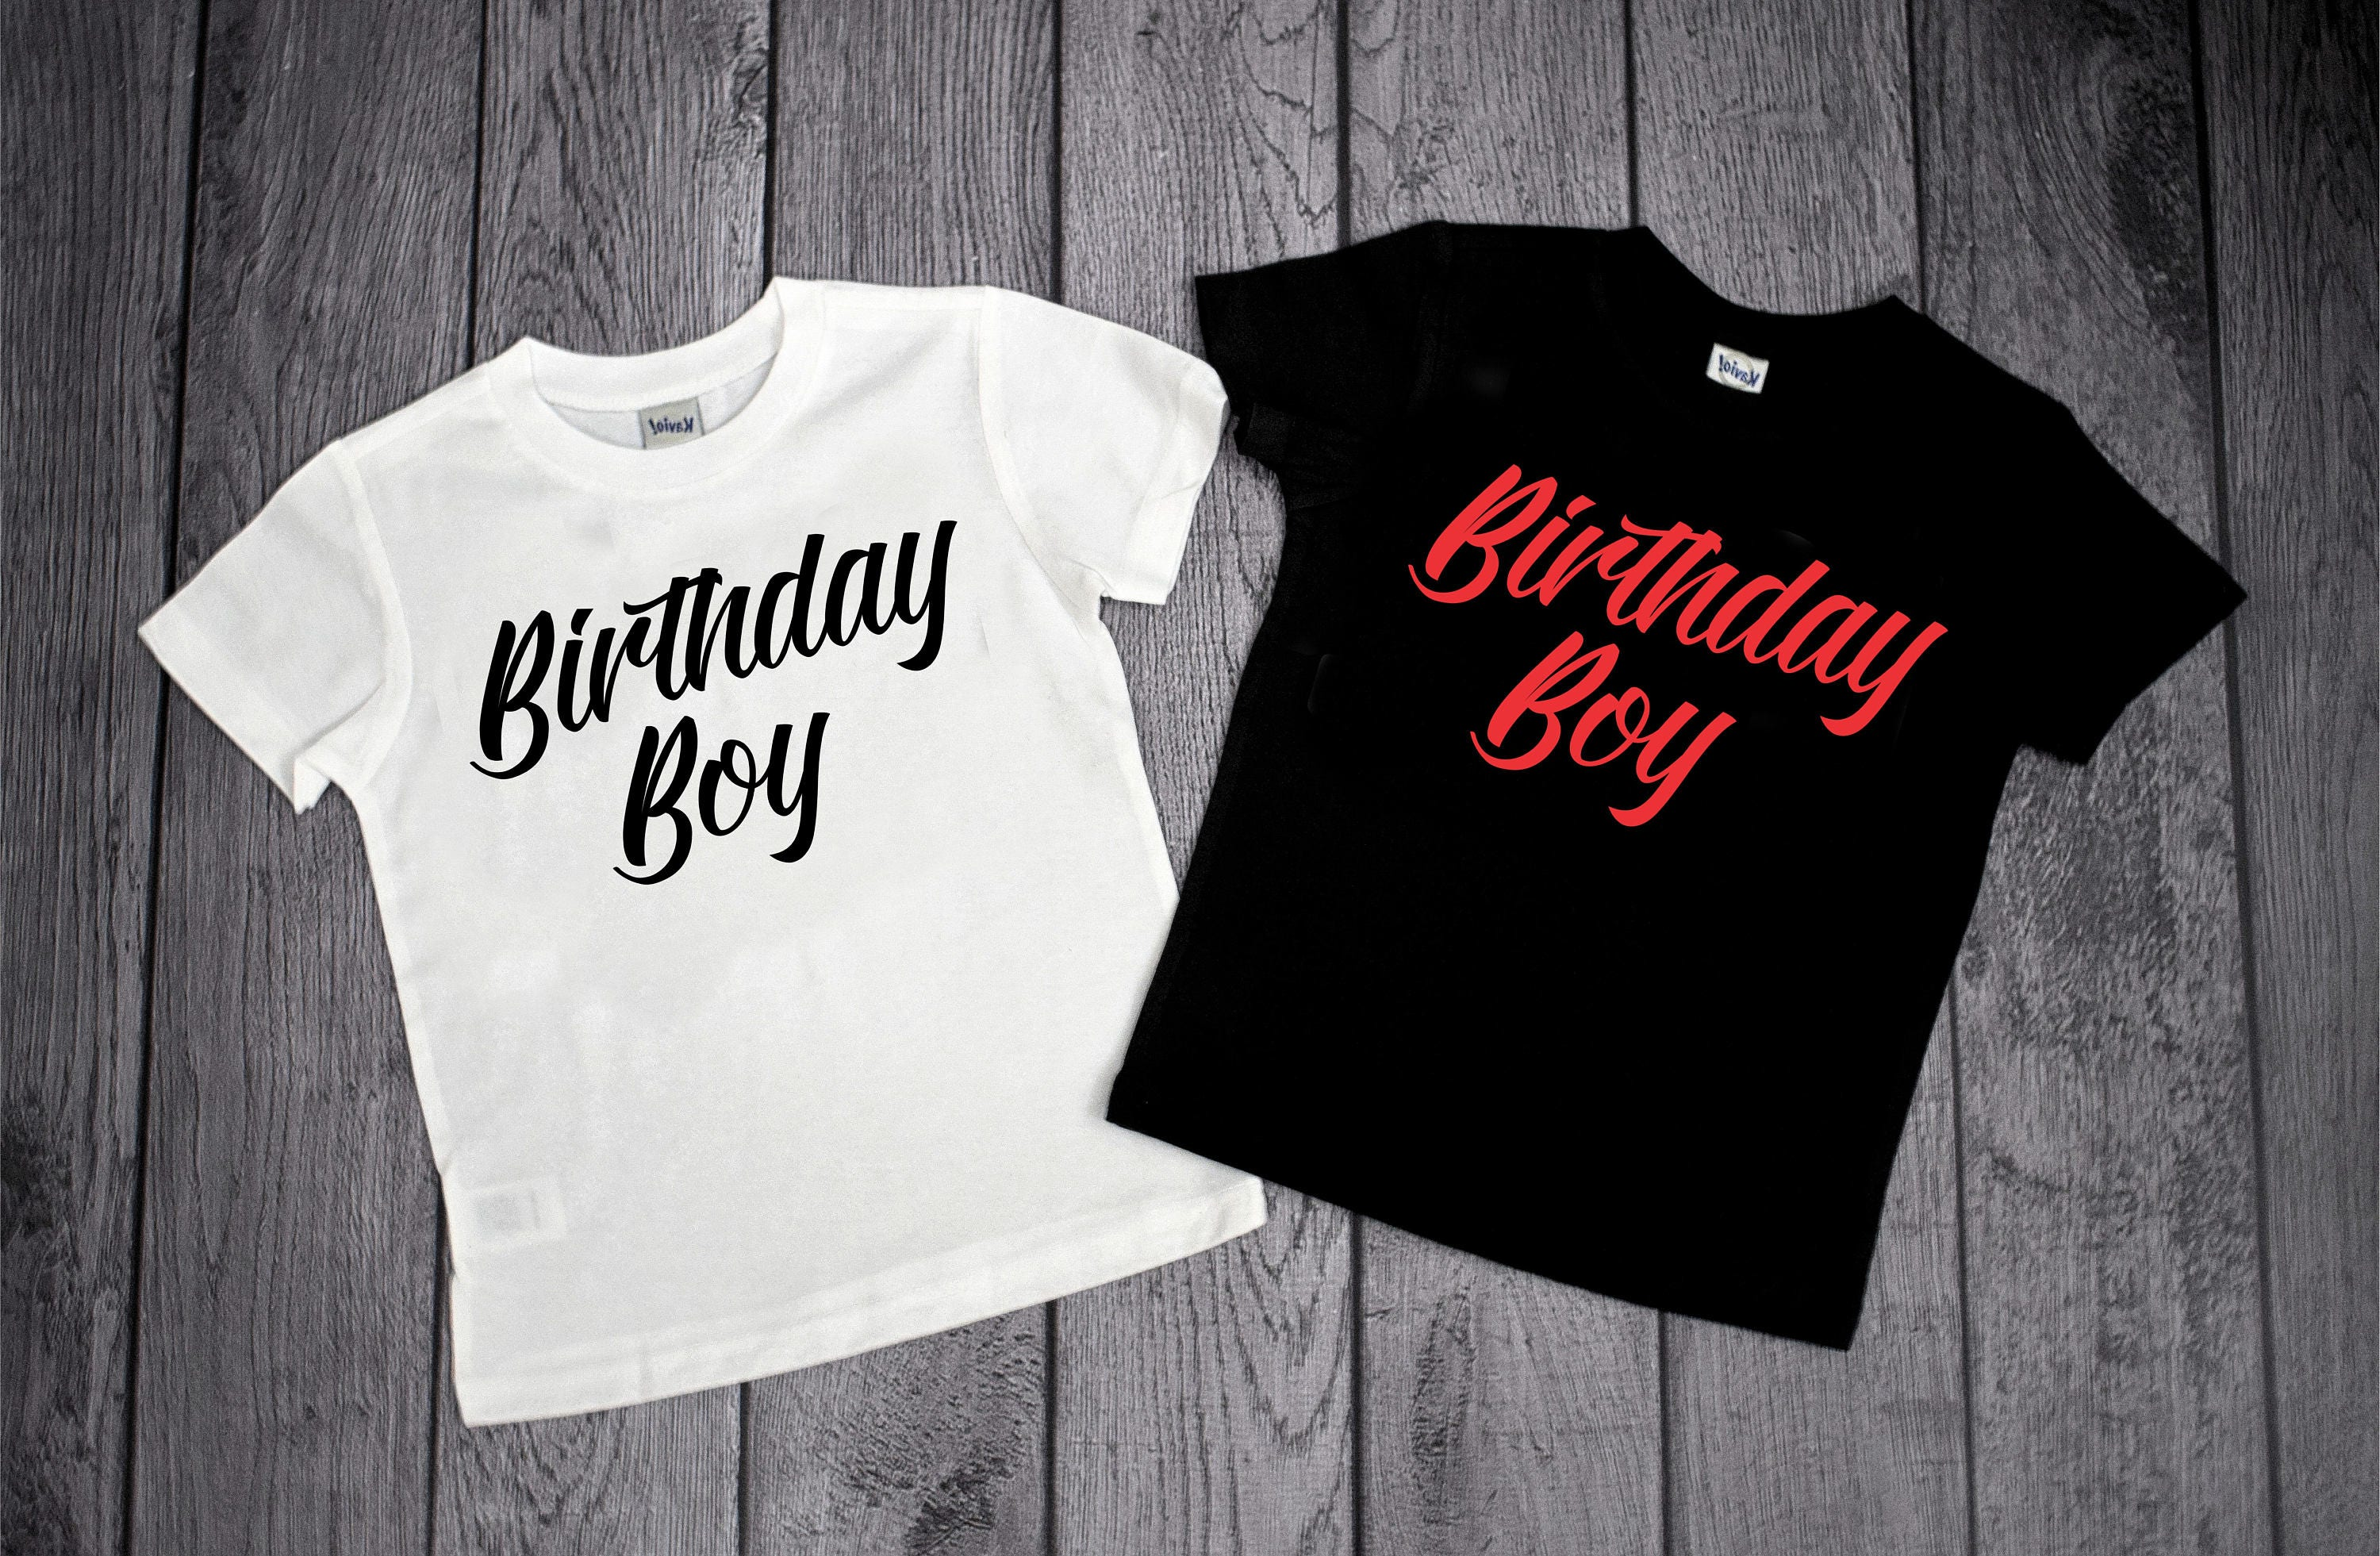 3 Year Old Birthday Boy Shirt Boys 3rd